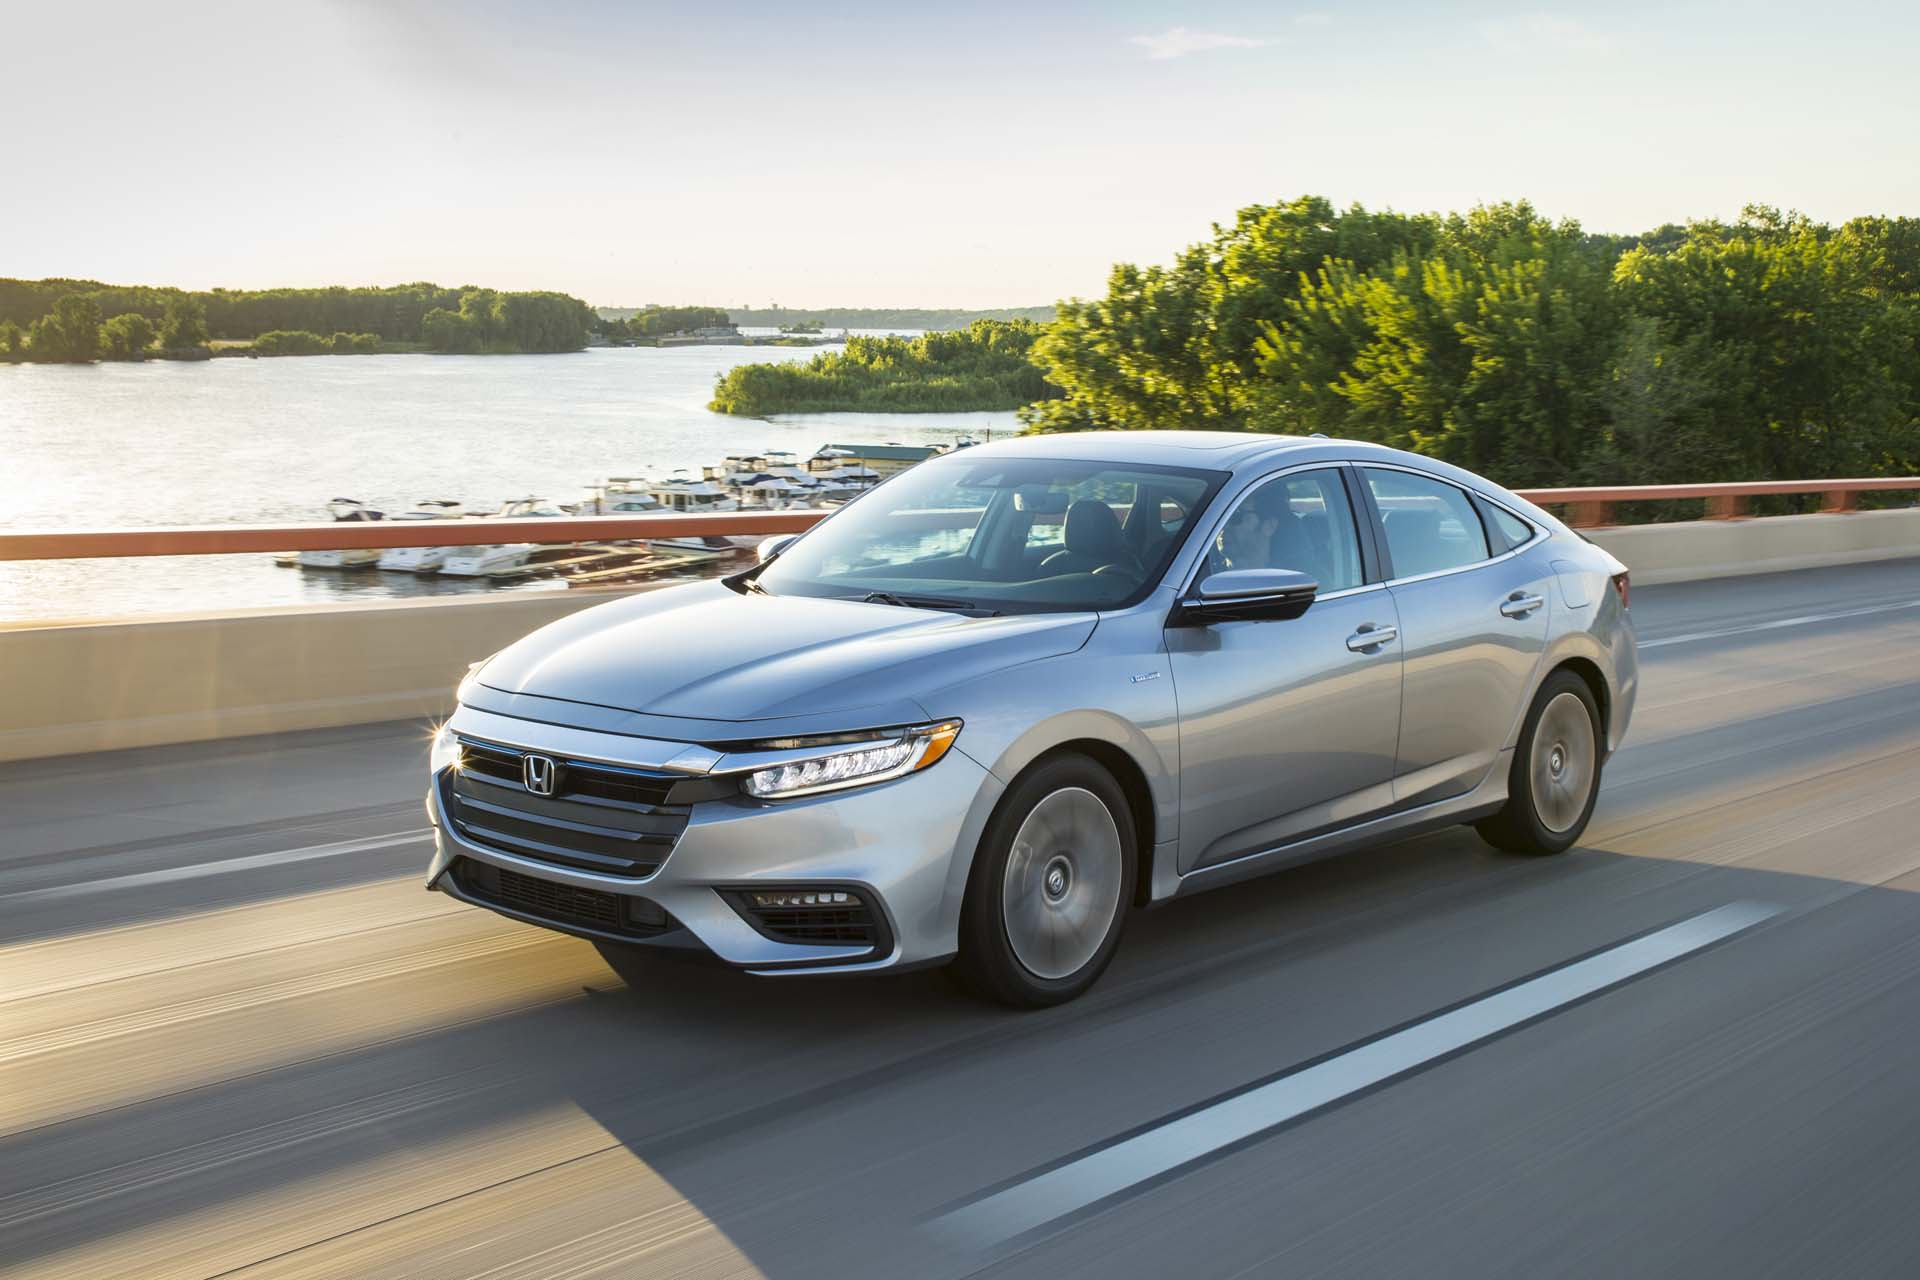 2020 Honda Civic Review.2020 Honda Insight Review Ratings Specs Prices And